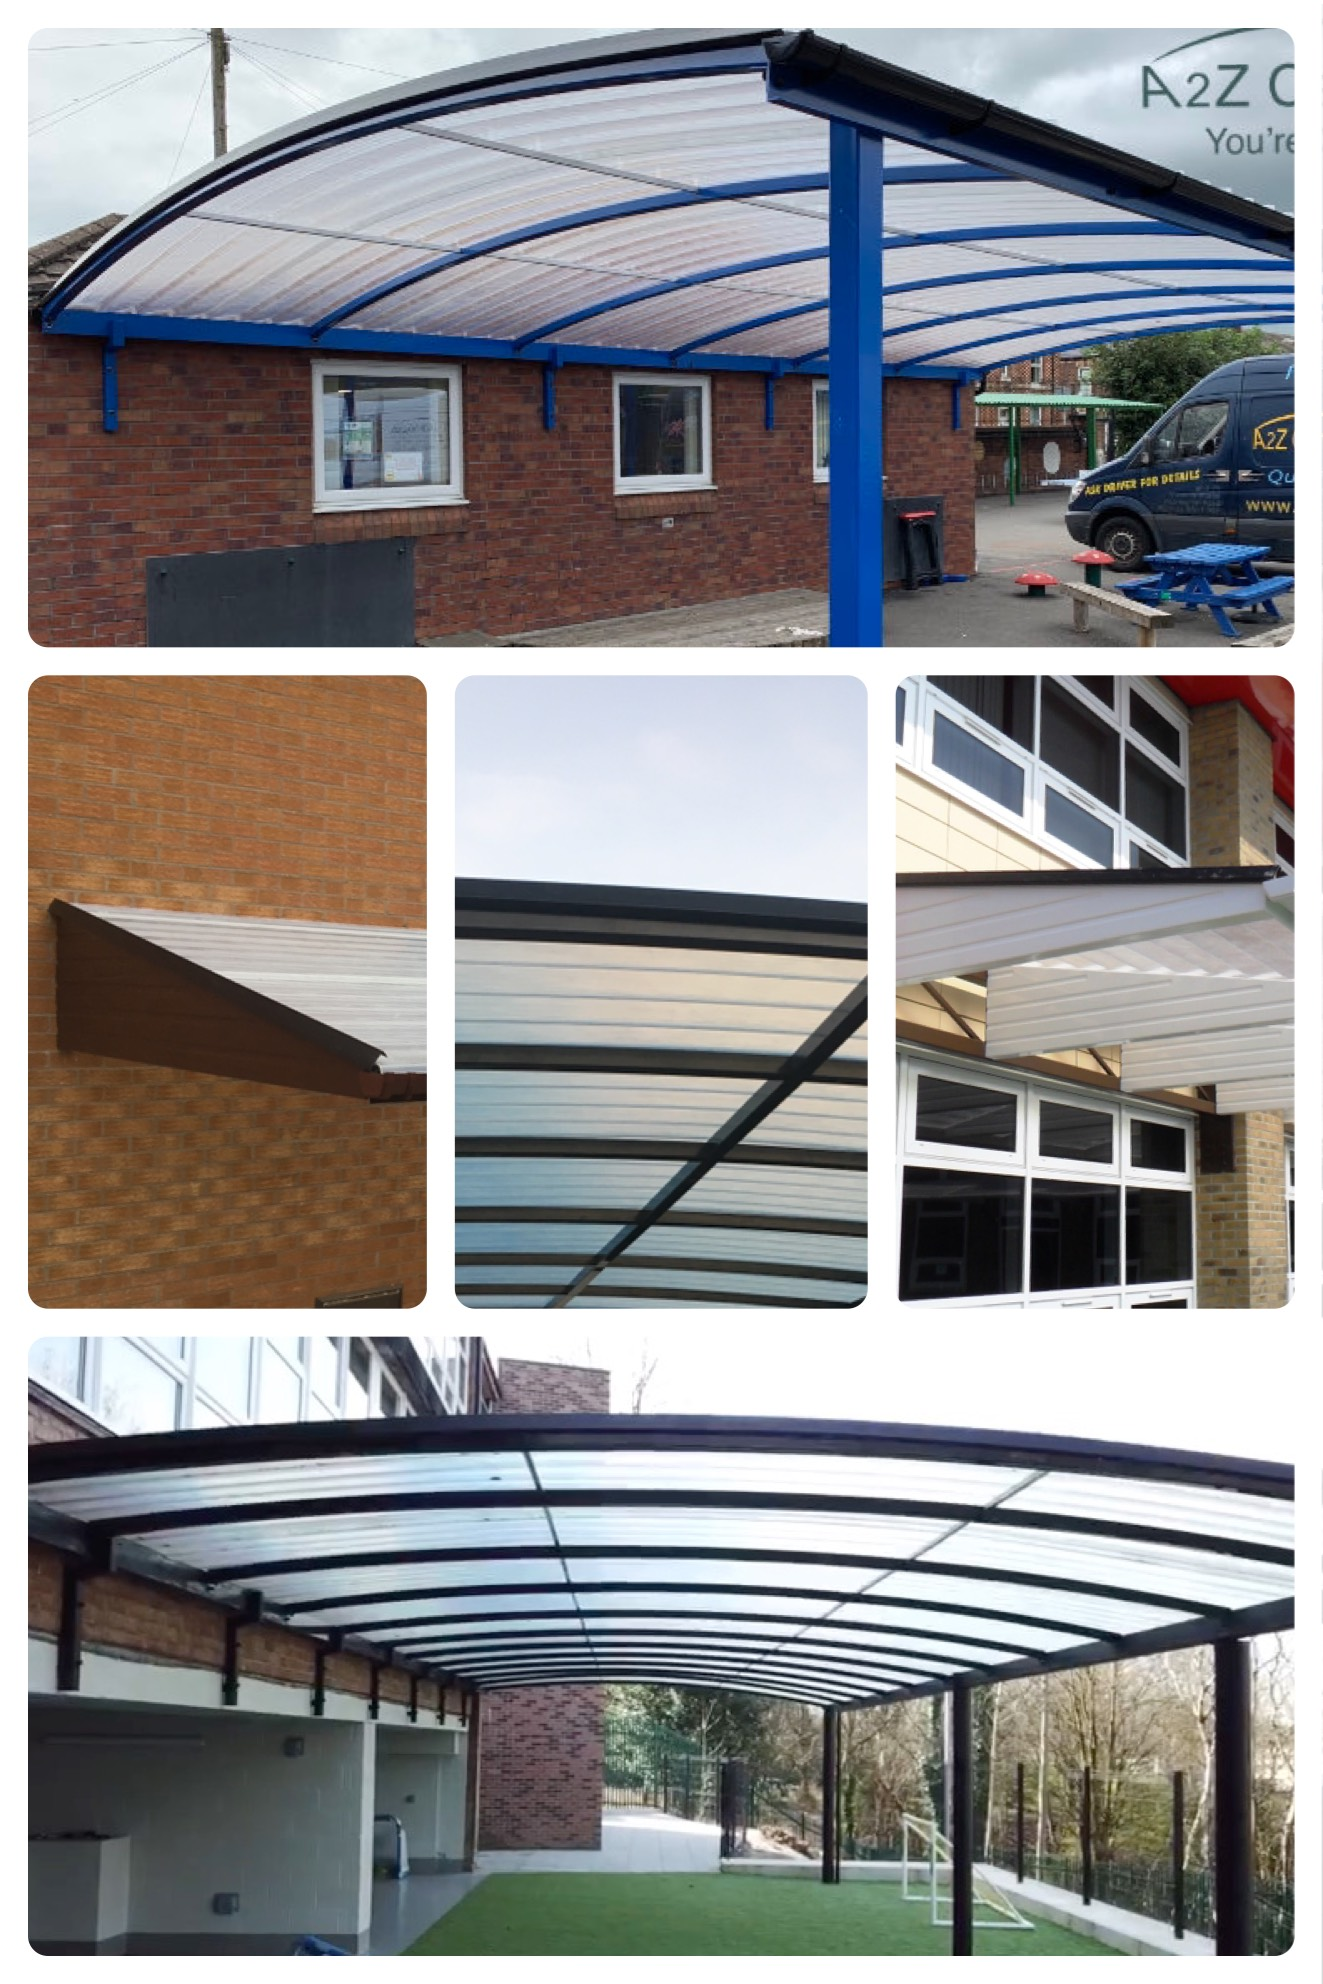 School canopy installations